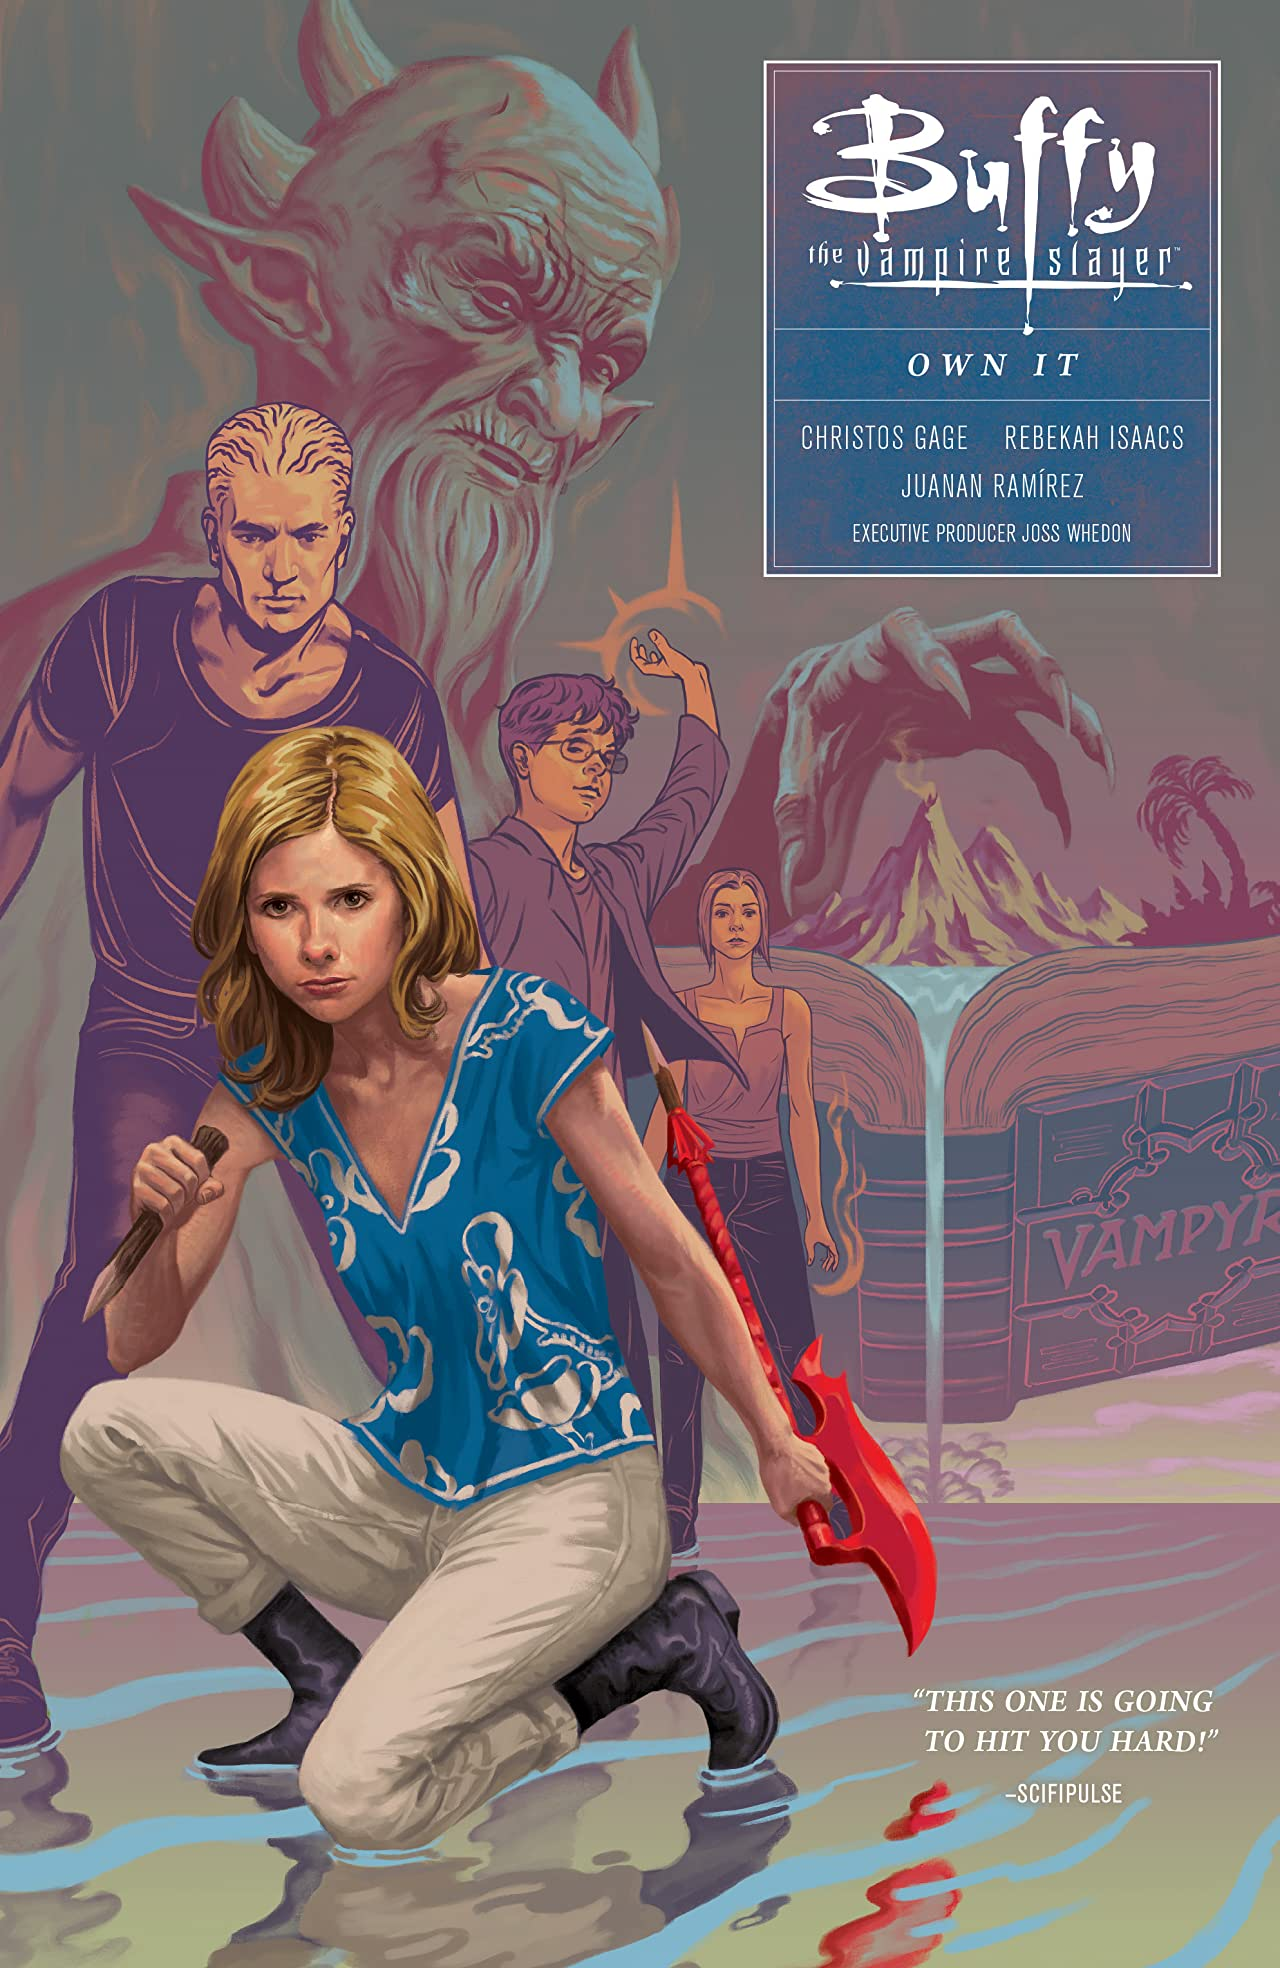 Buffy the Vampire Slayer: Season 10 Vol. 6: Own It